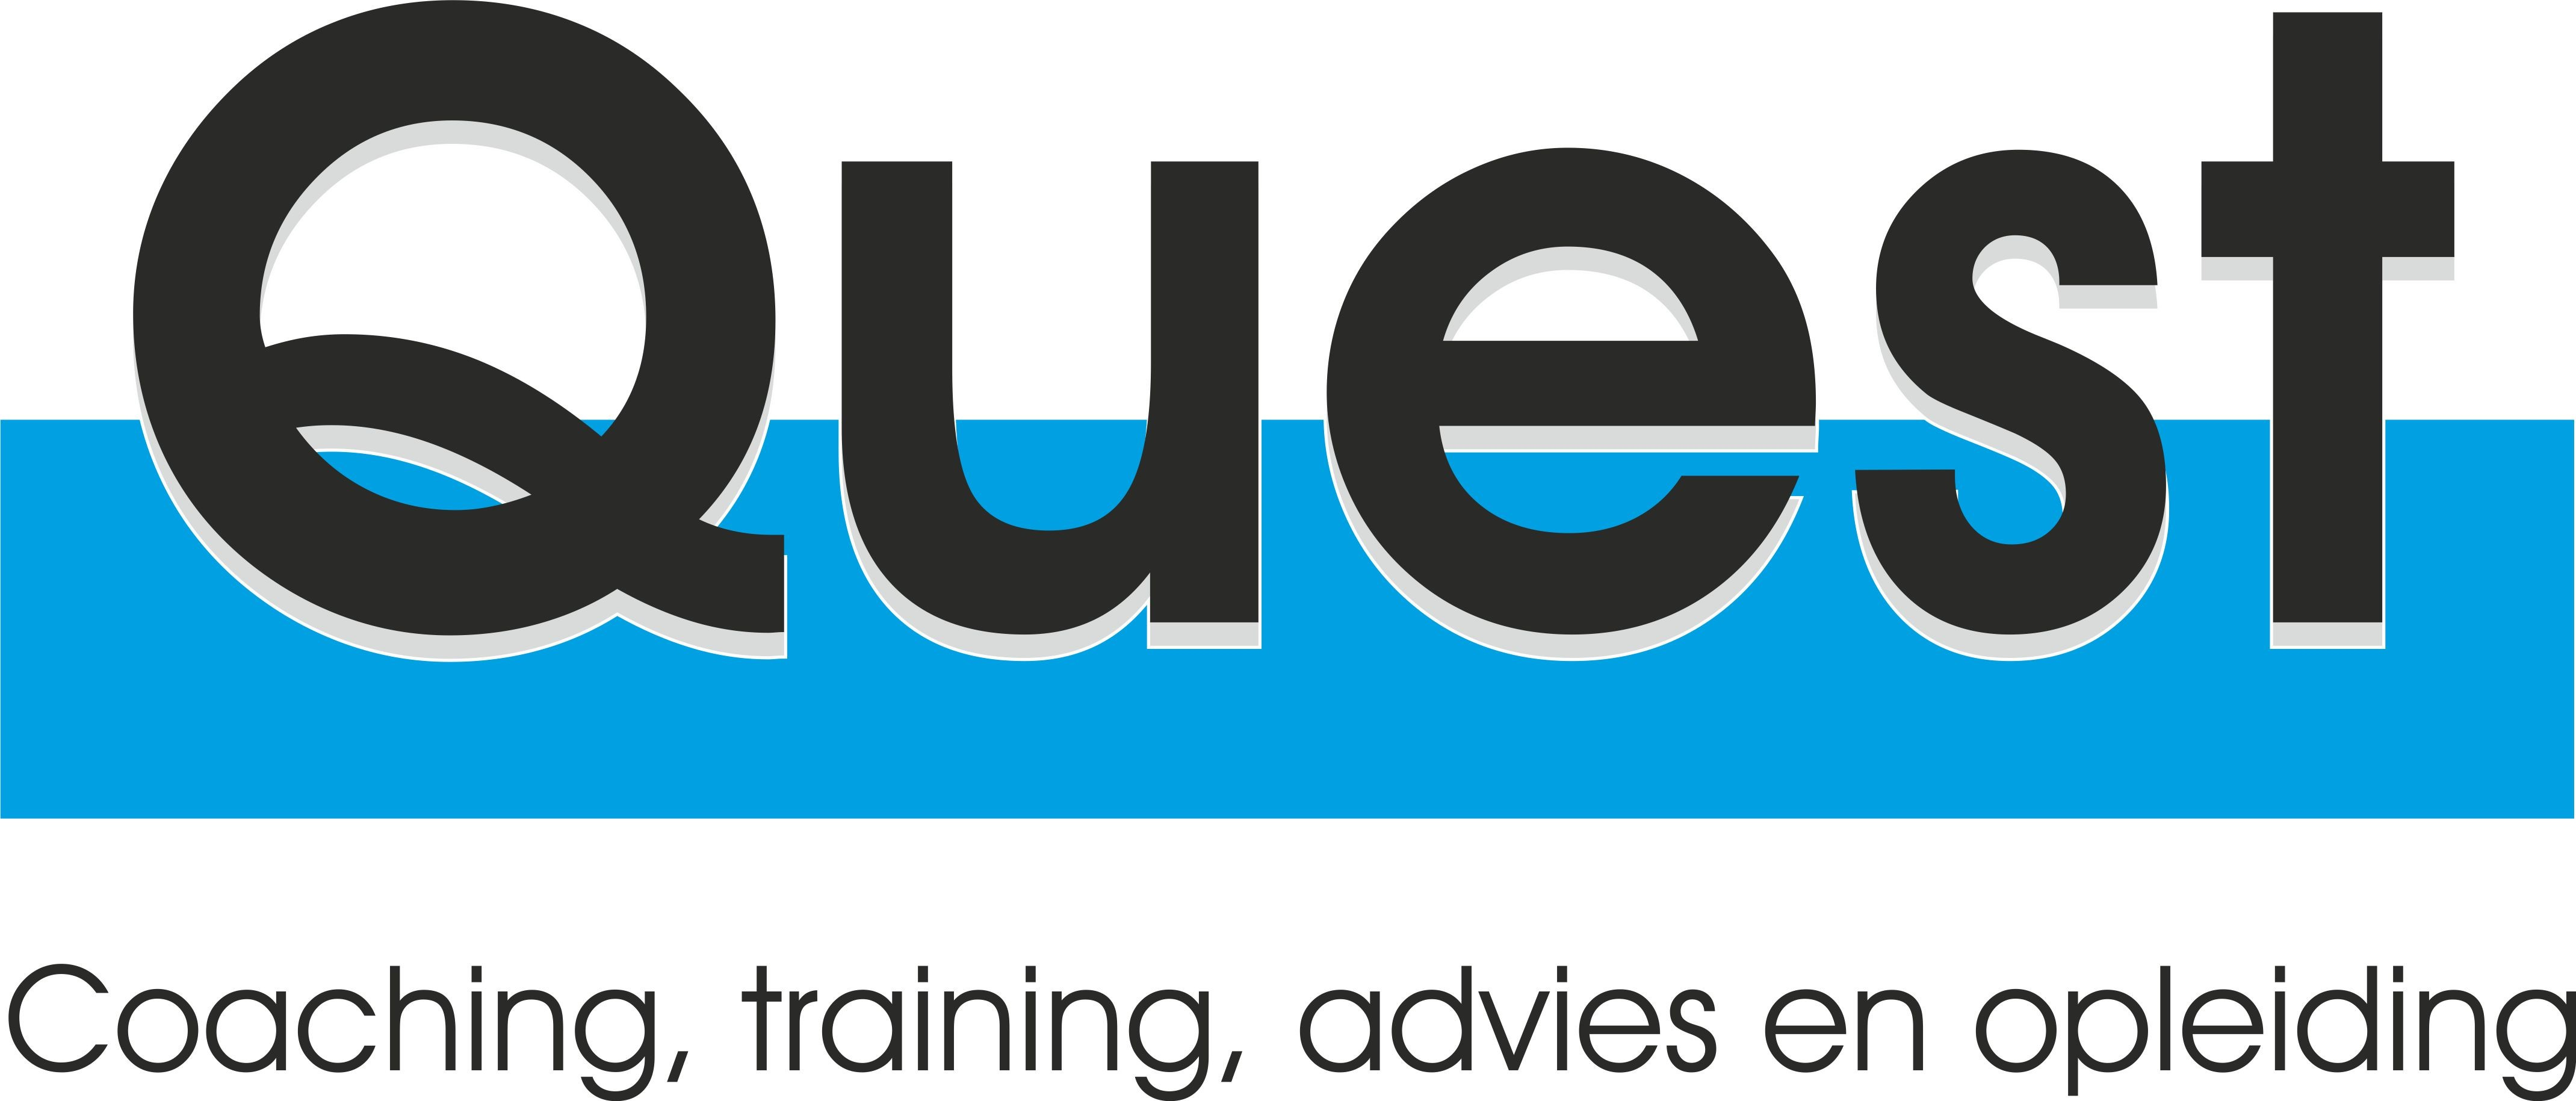 Logo Quest for training